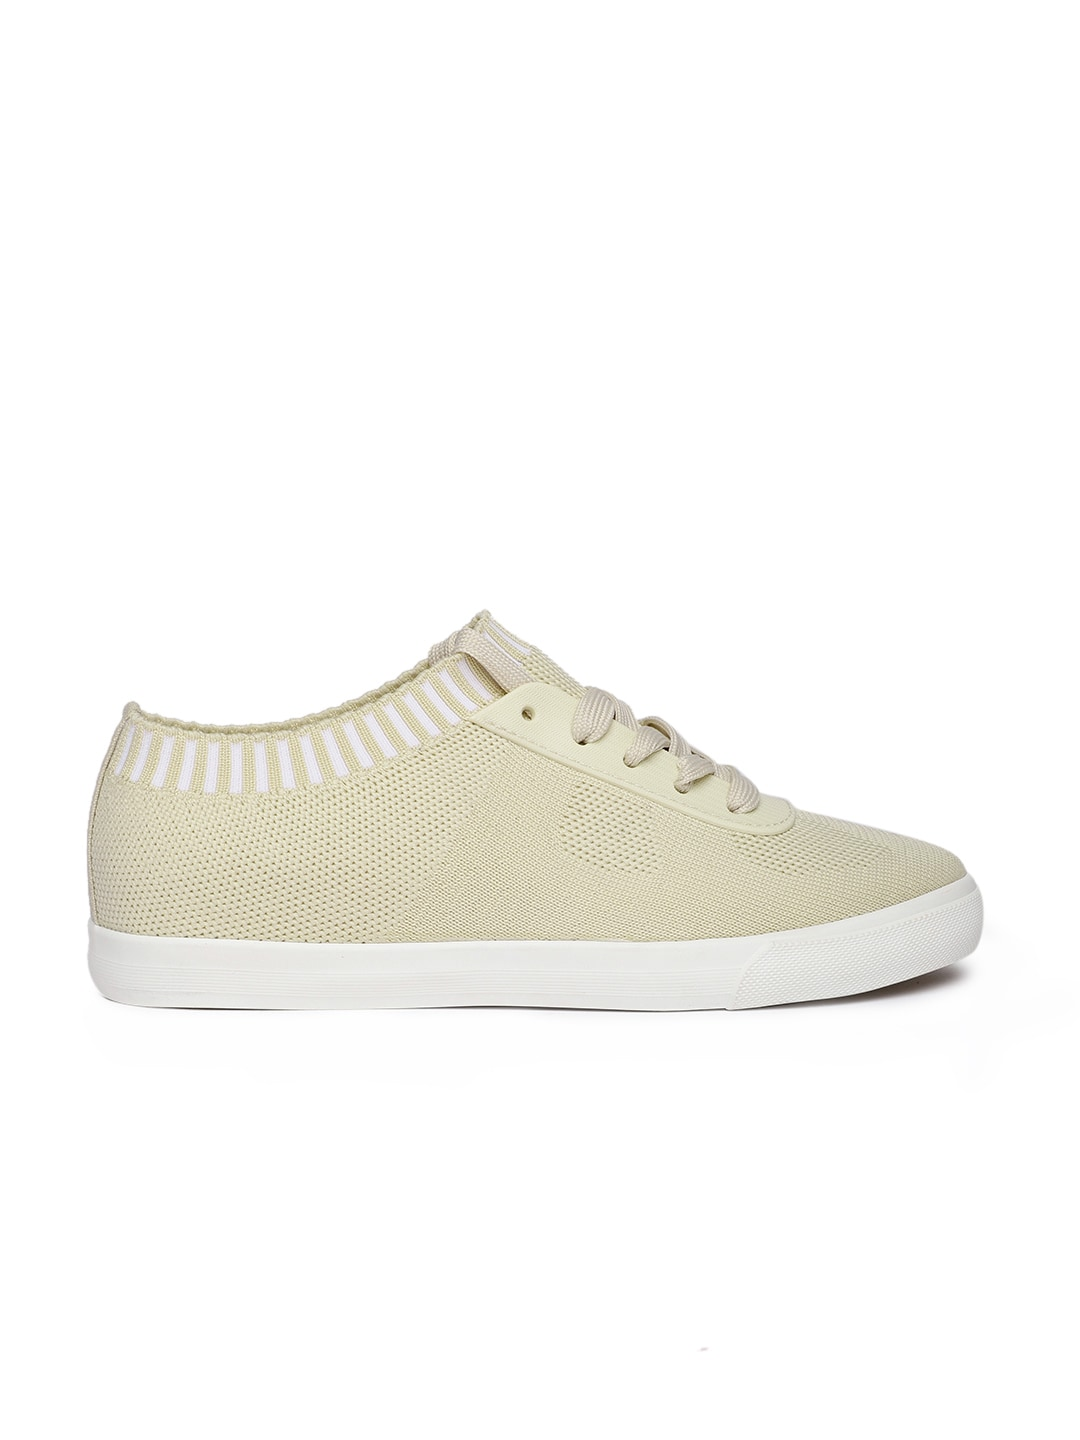 717eebab567a Buy Ether Women Pink Slip On Sneakers - Casual Shoes for Women ...